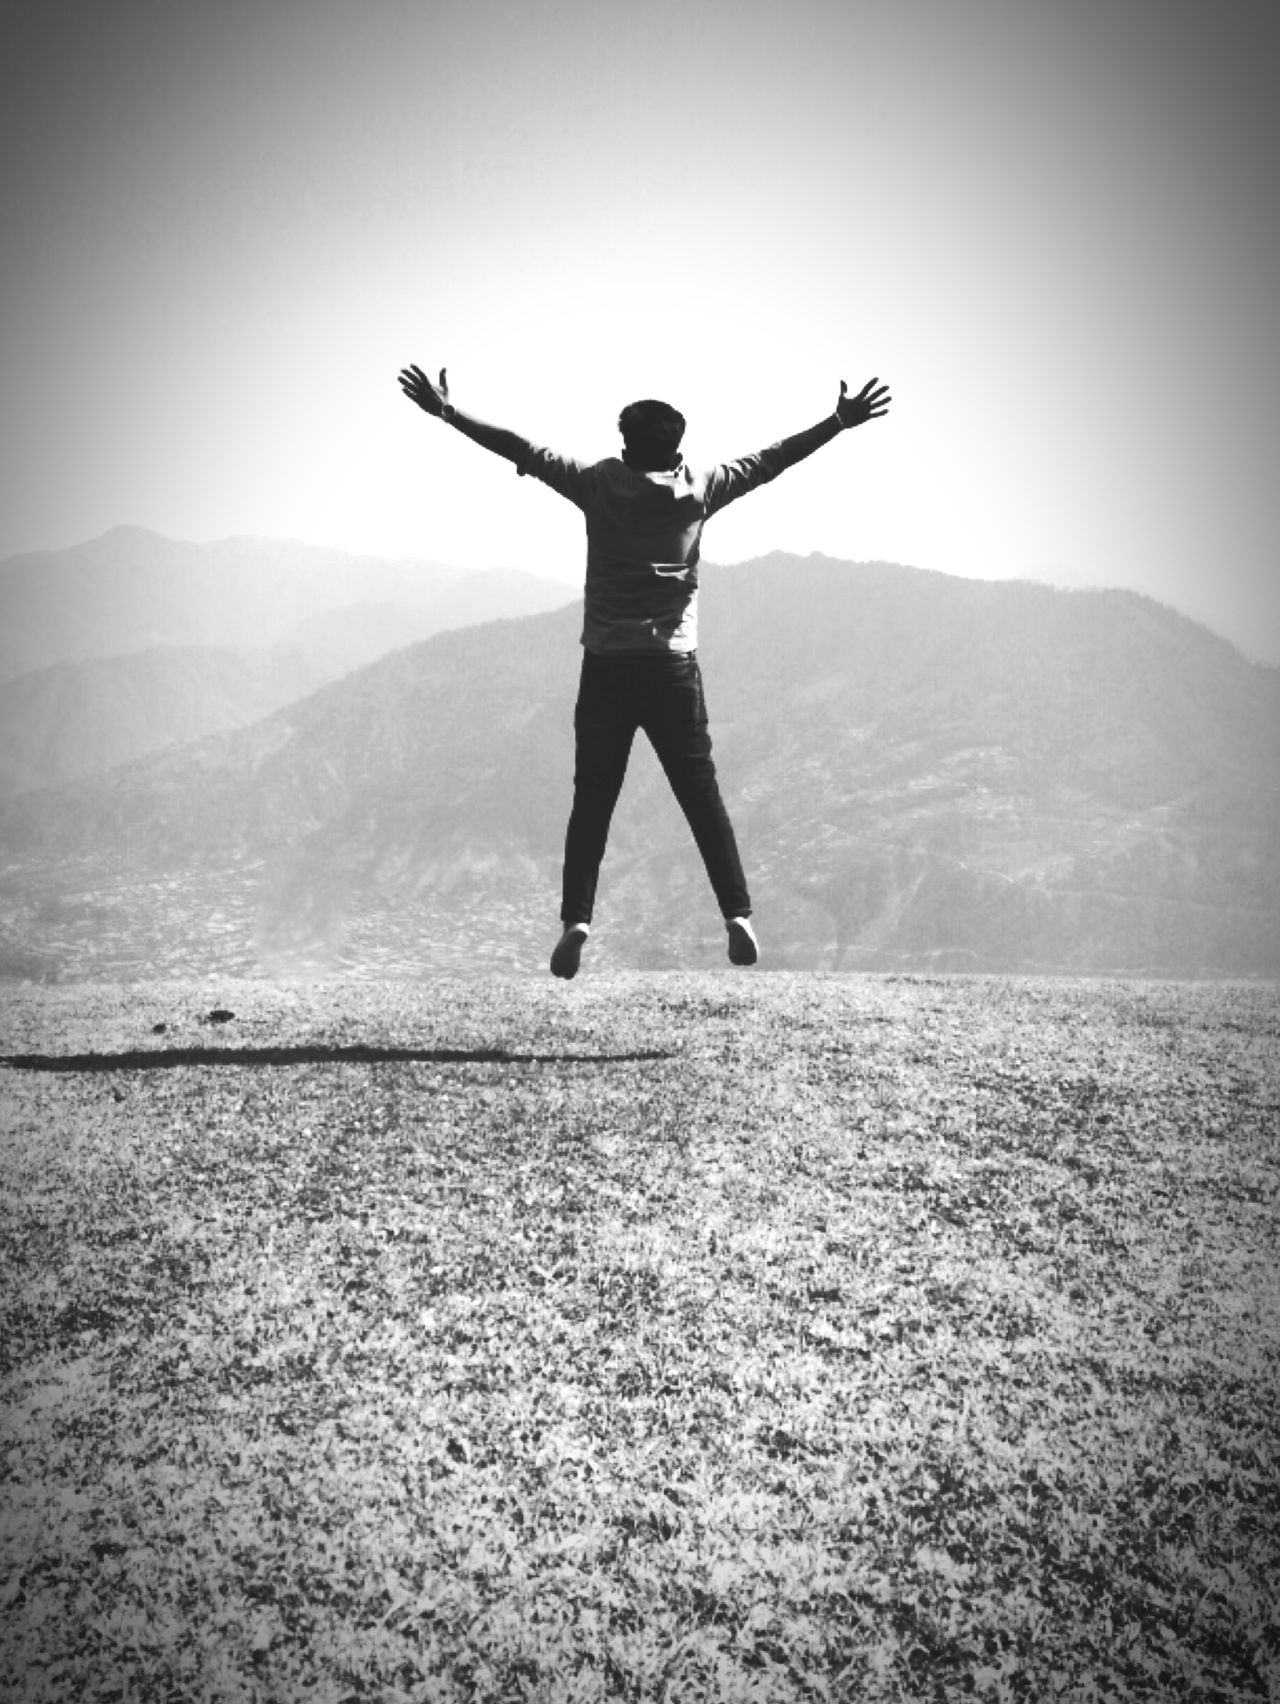 Joy Of Life Jumpshot Jump To The Sky Lifeisbeautiful Life Is A Journey Traveller Climbing Stairs Mountains And Sky Reaching The Top Top Of The World Away From The Hustle Awayfromeverything Just Being Me Just Taking Pictures Living The Dream Exploring The Unknown Unknown Journey Journeytoheaven Only Black And White Photographs Bijlimahadev Kullu Manali India